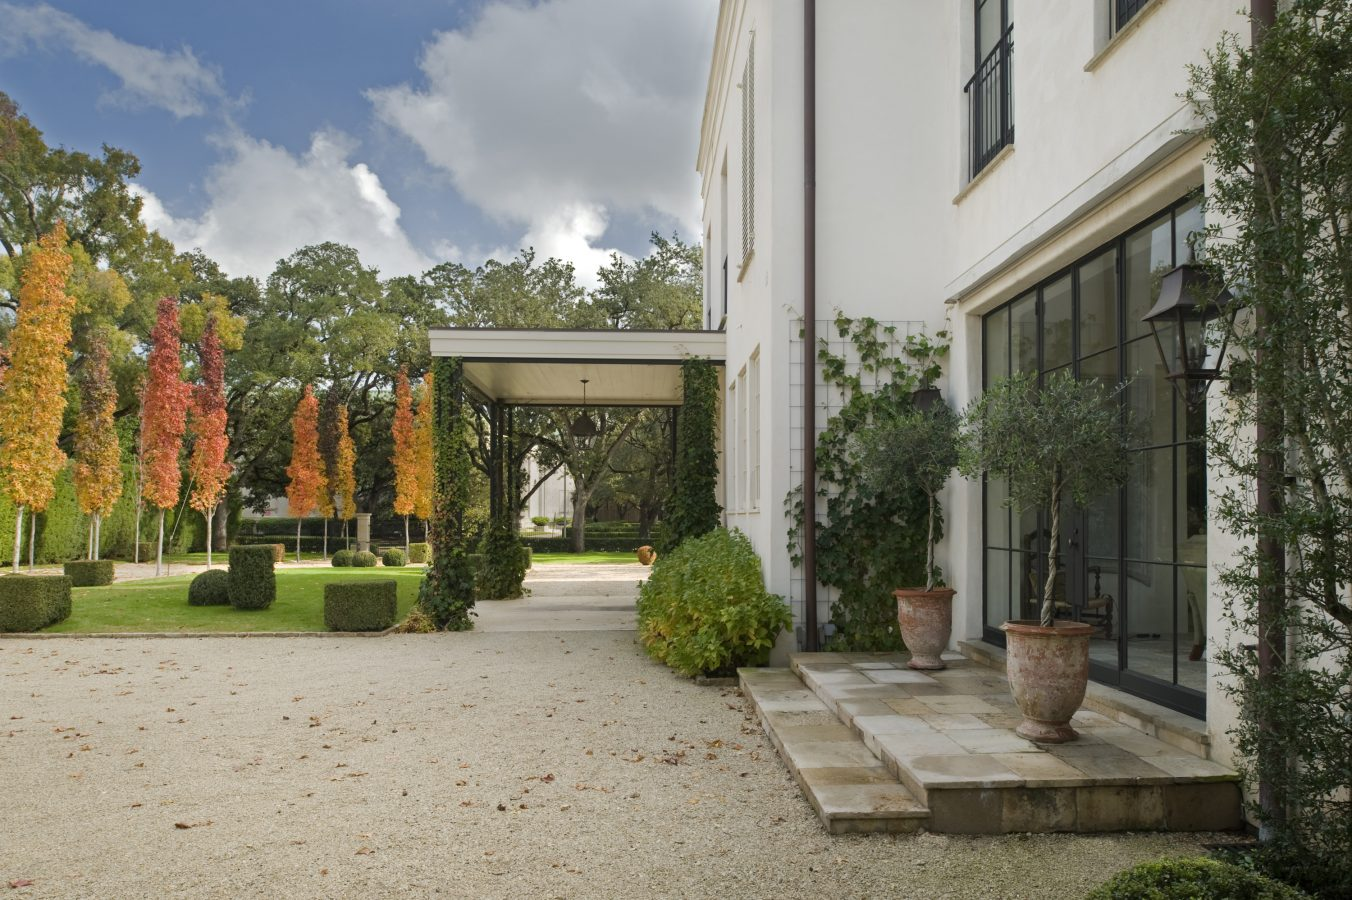 Montrose home in Houston. Come enjoy photos of this house tour with architecture by Reagan Andre.